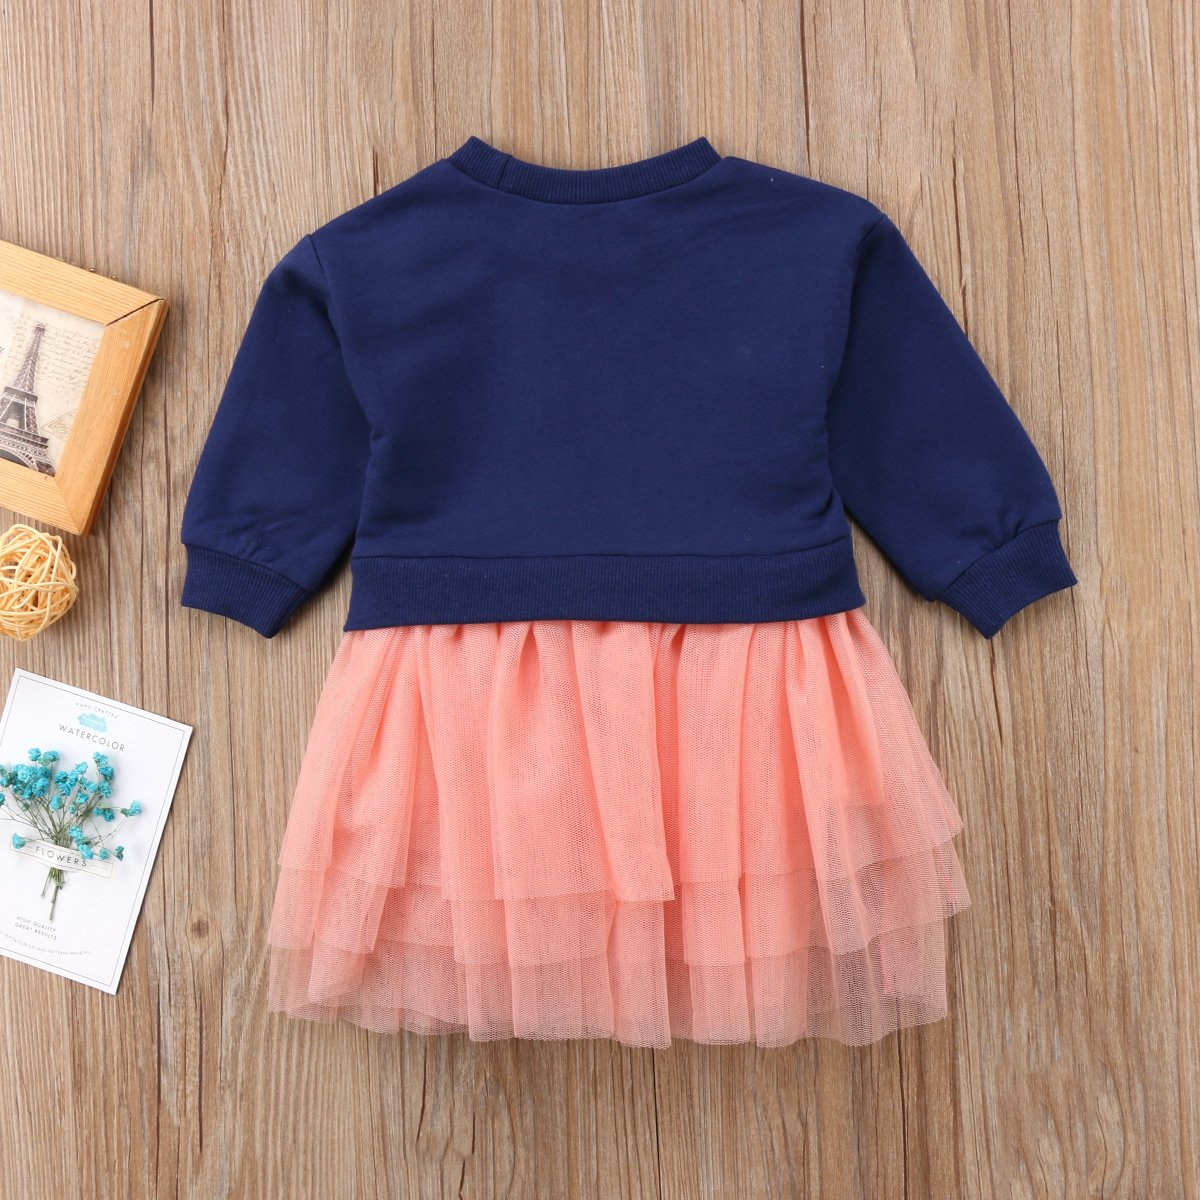 Greenafter Toddler Girls Knitted Dress Long Sleeve Tulle Skirts Mini Dress Outfit